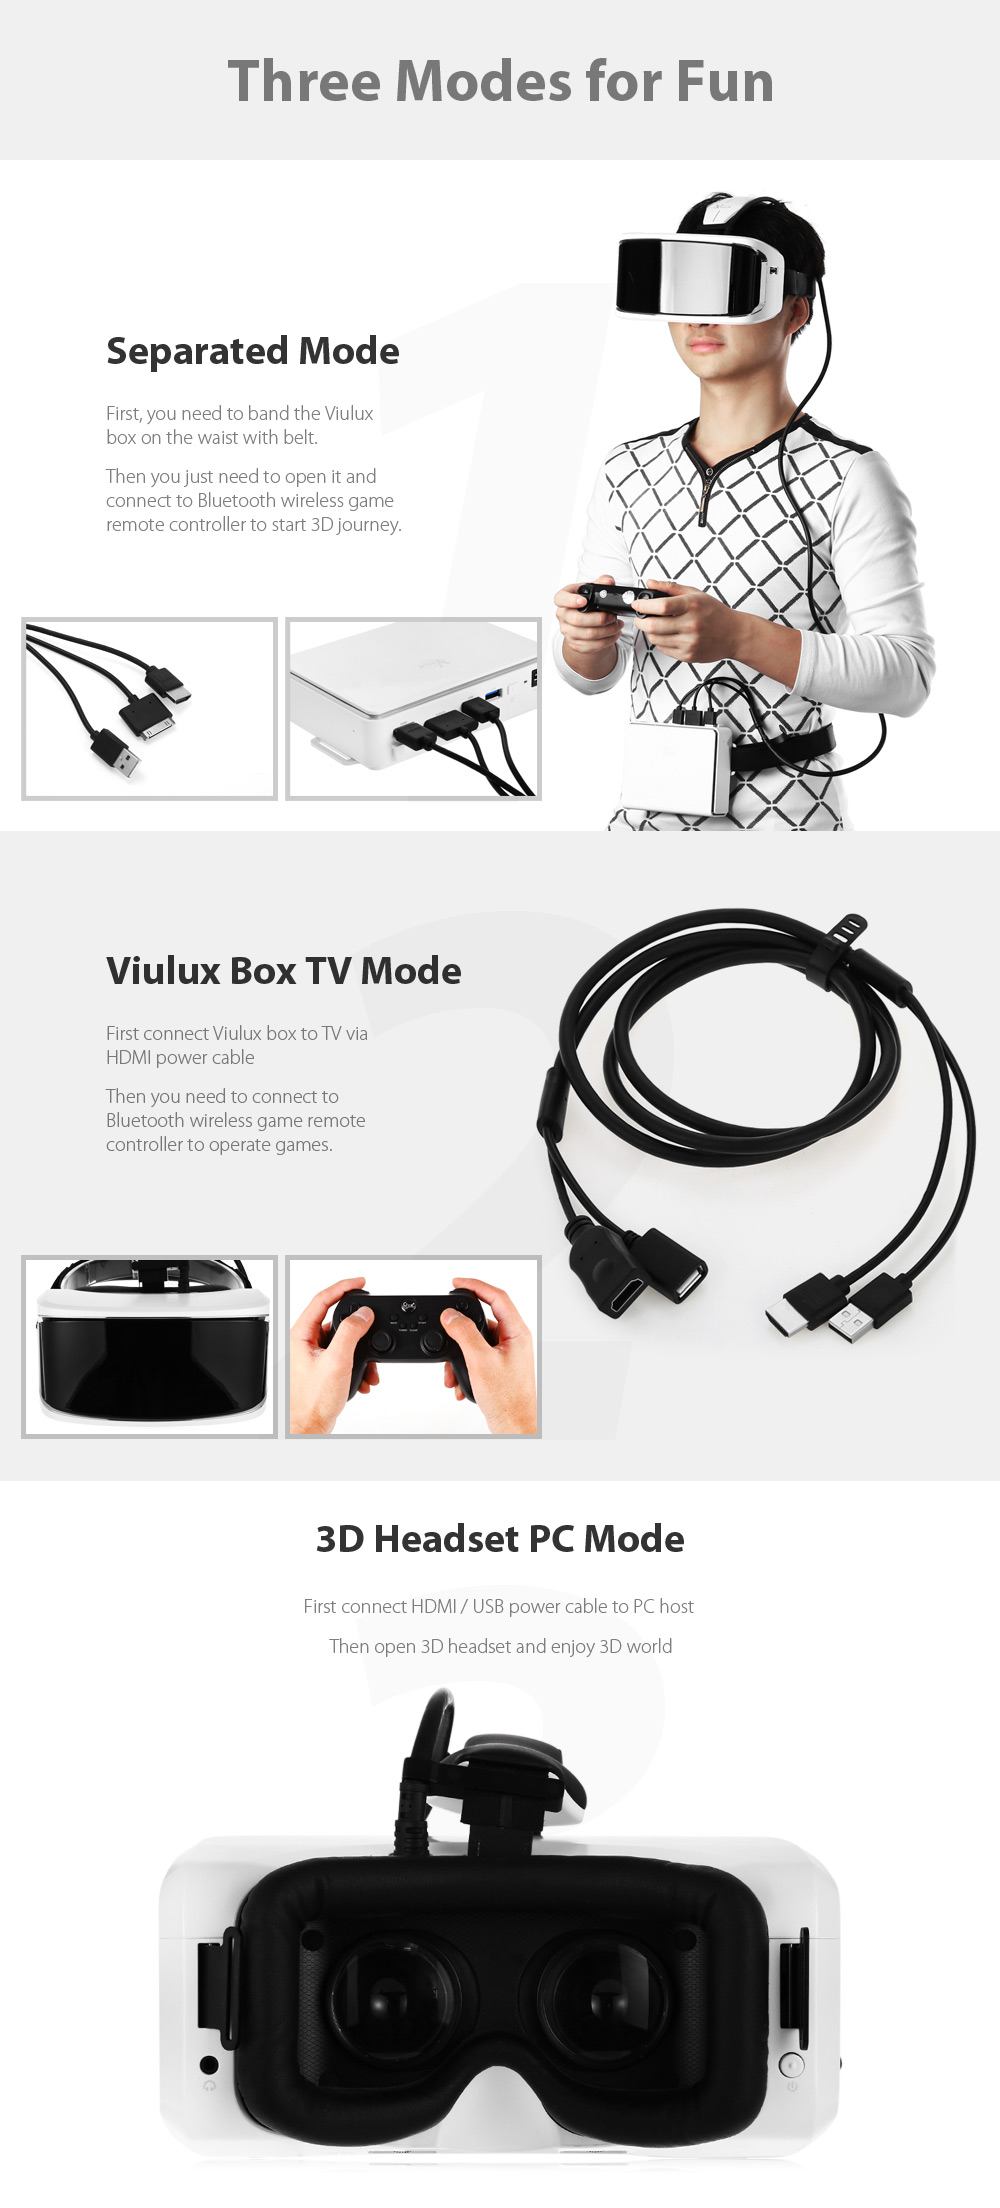 VIULUX VR - X 2K 60Hz Refresh Rate All-in-one 3D Headset